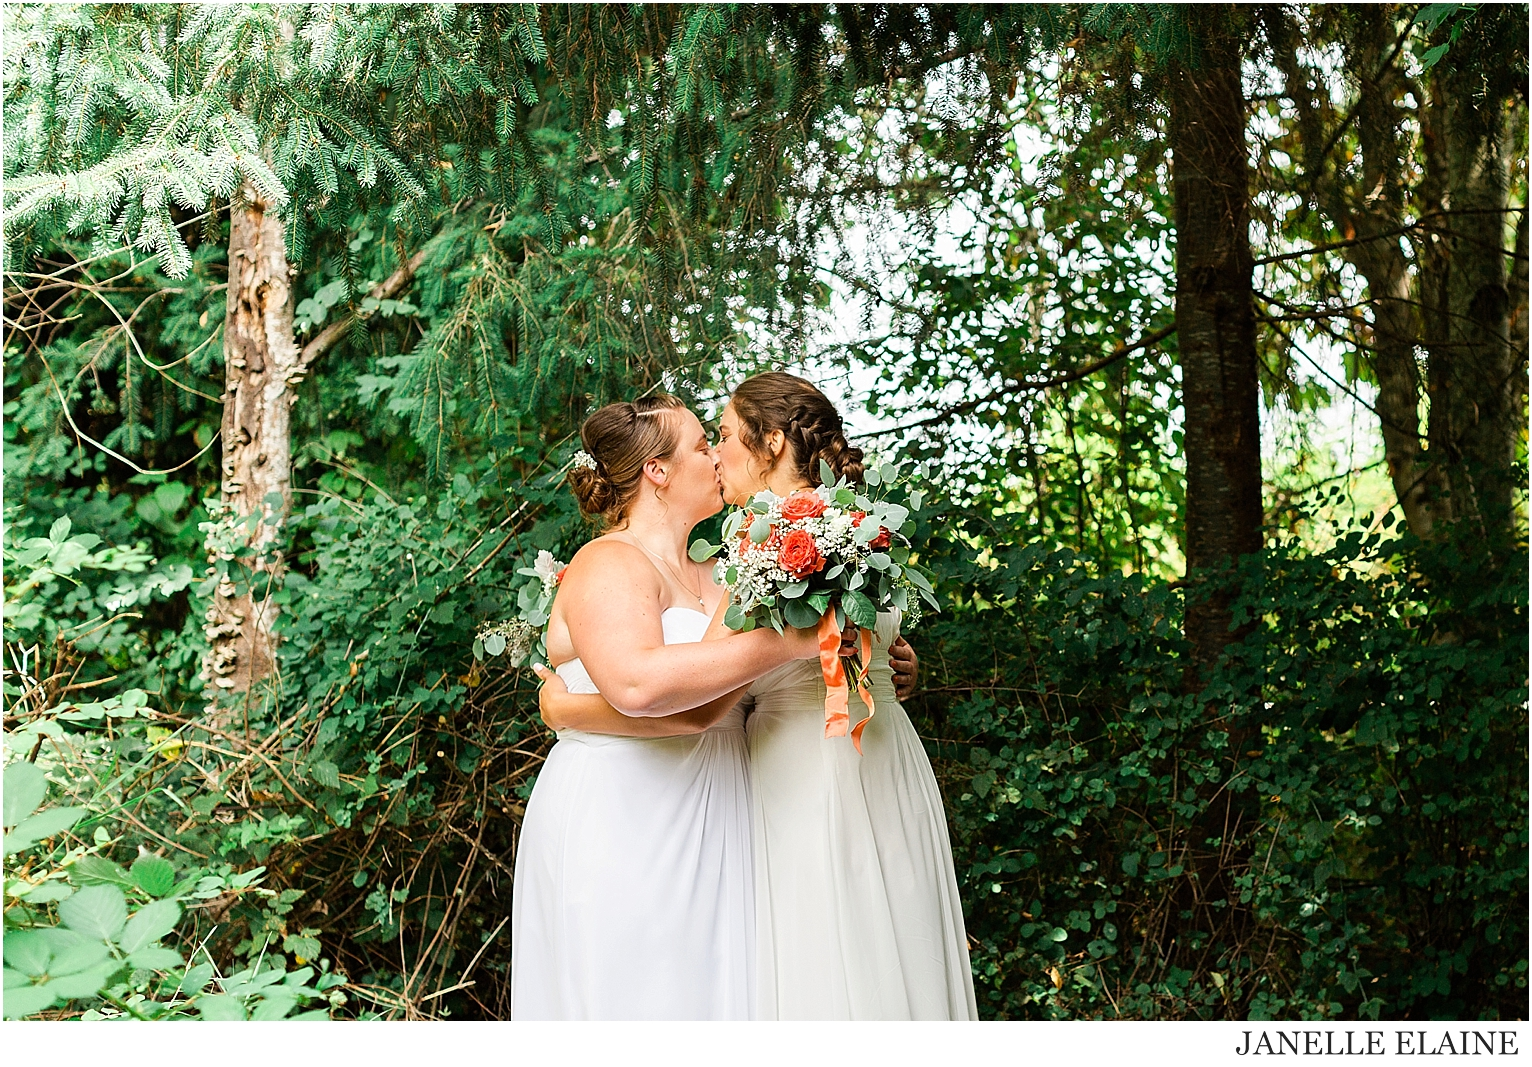 liz and christina lanning-first look and portraits-luther burbank park-janelle elaine photography-26.jpg